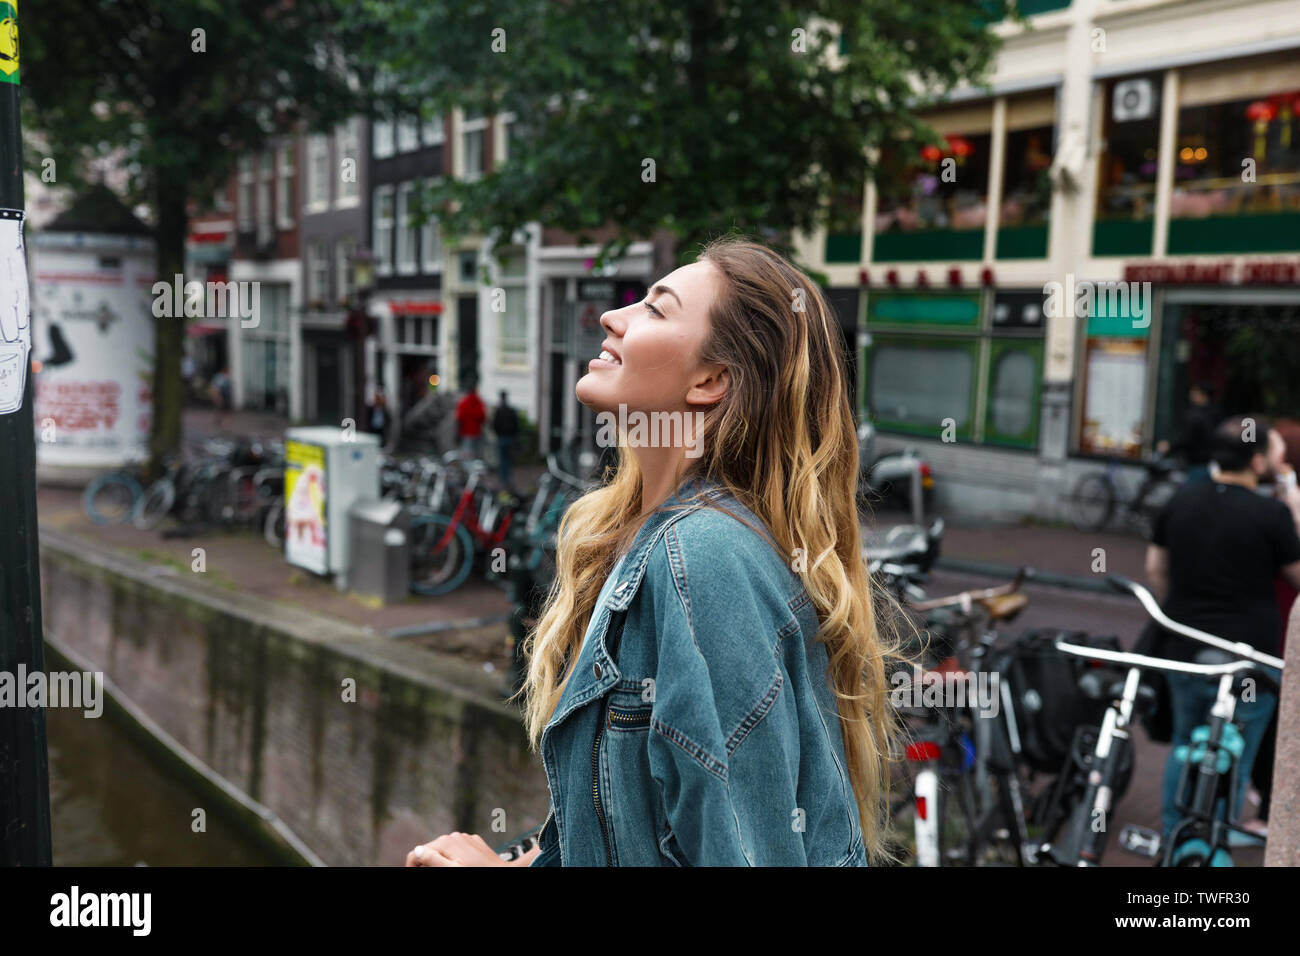 Cute girl in jeans jacket standing outdoor on the bridge and looking far away, thinking of her travellings. Long hairstyle, nude makeup, white teeth. Stock Photo